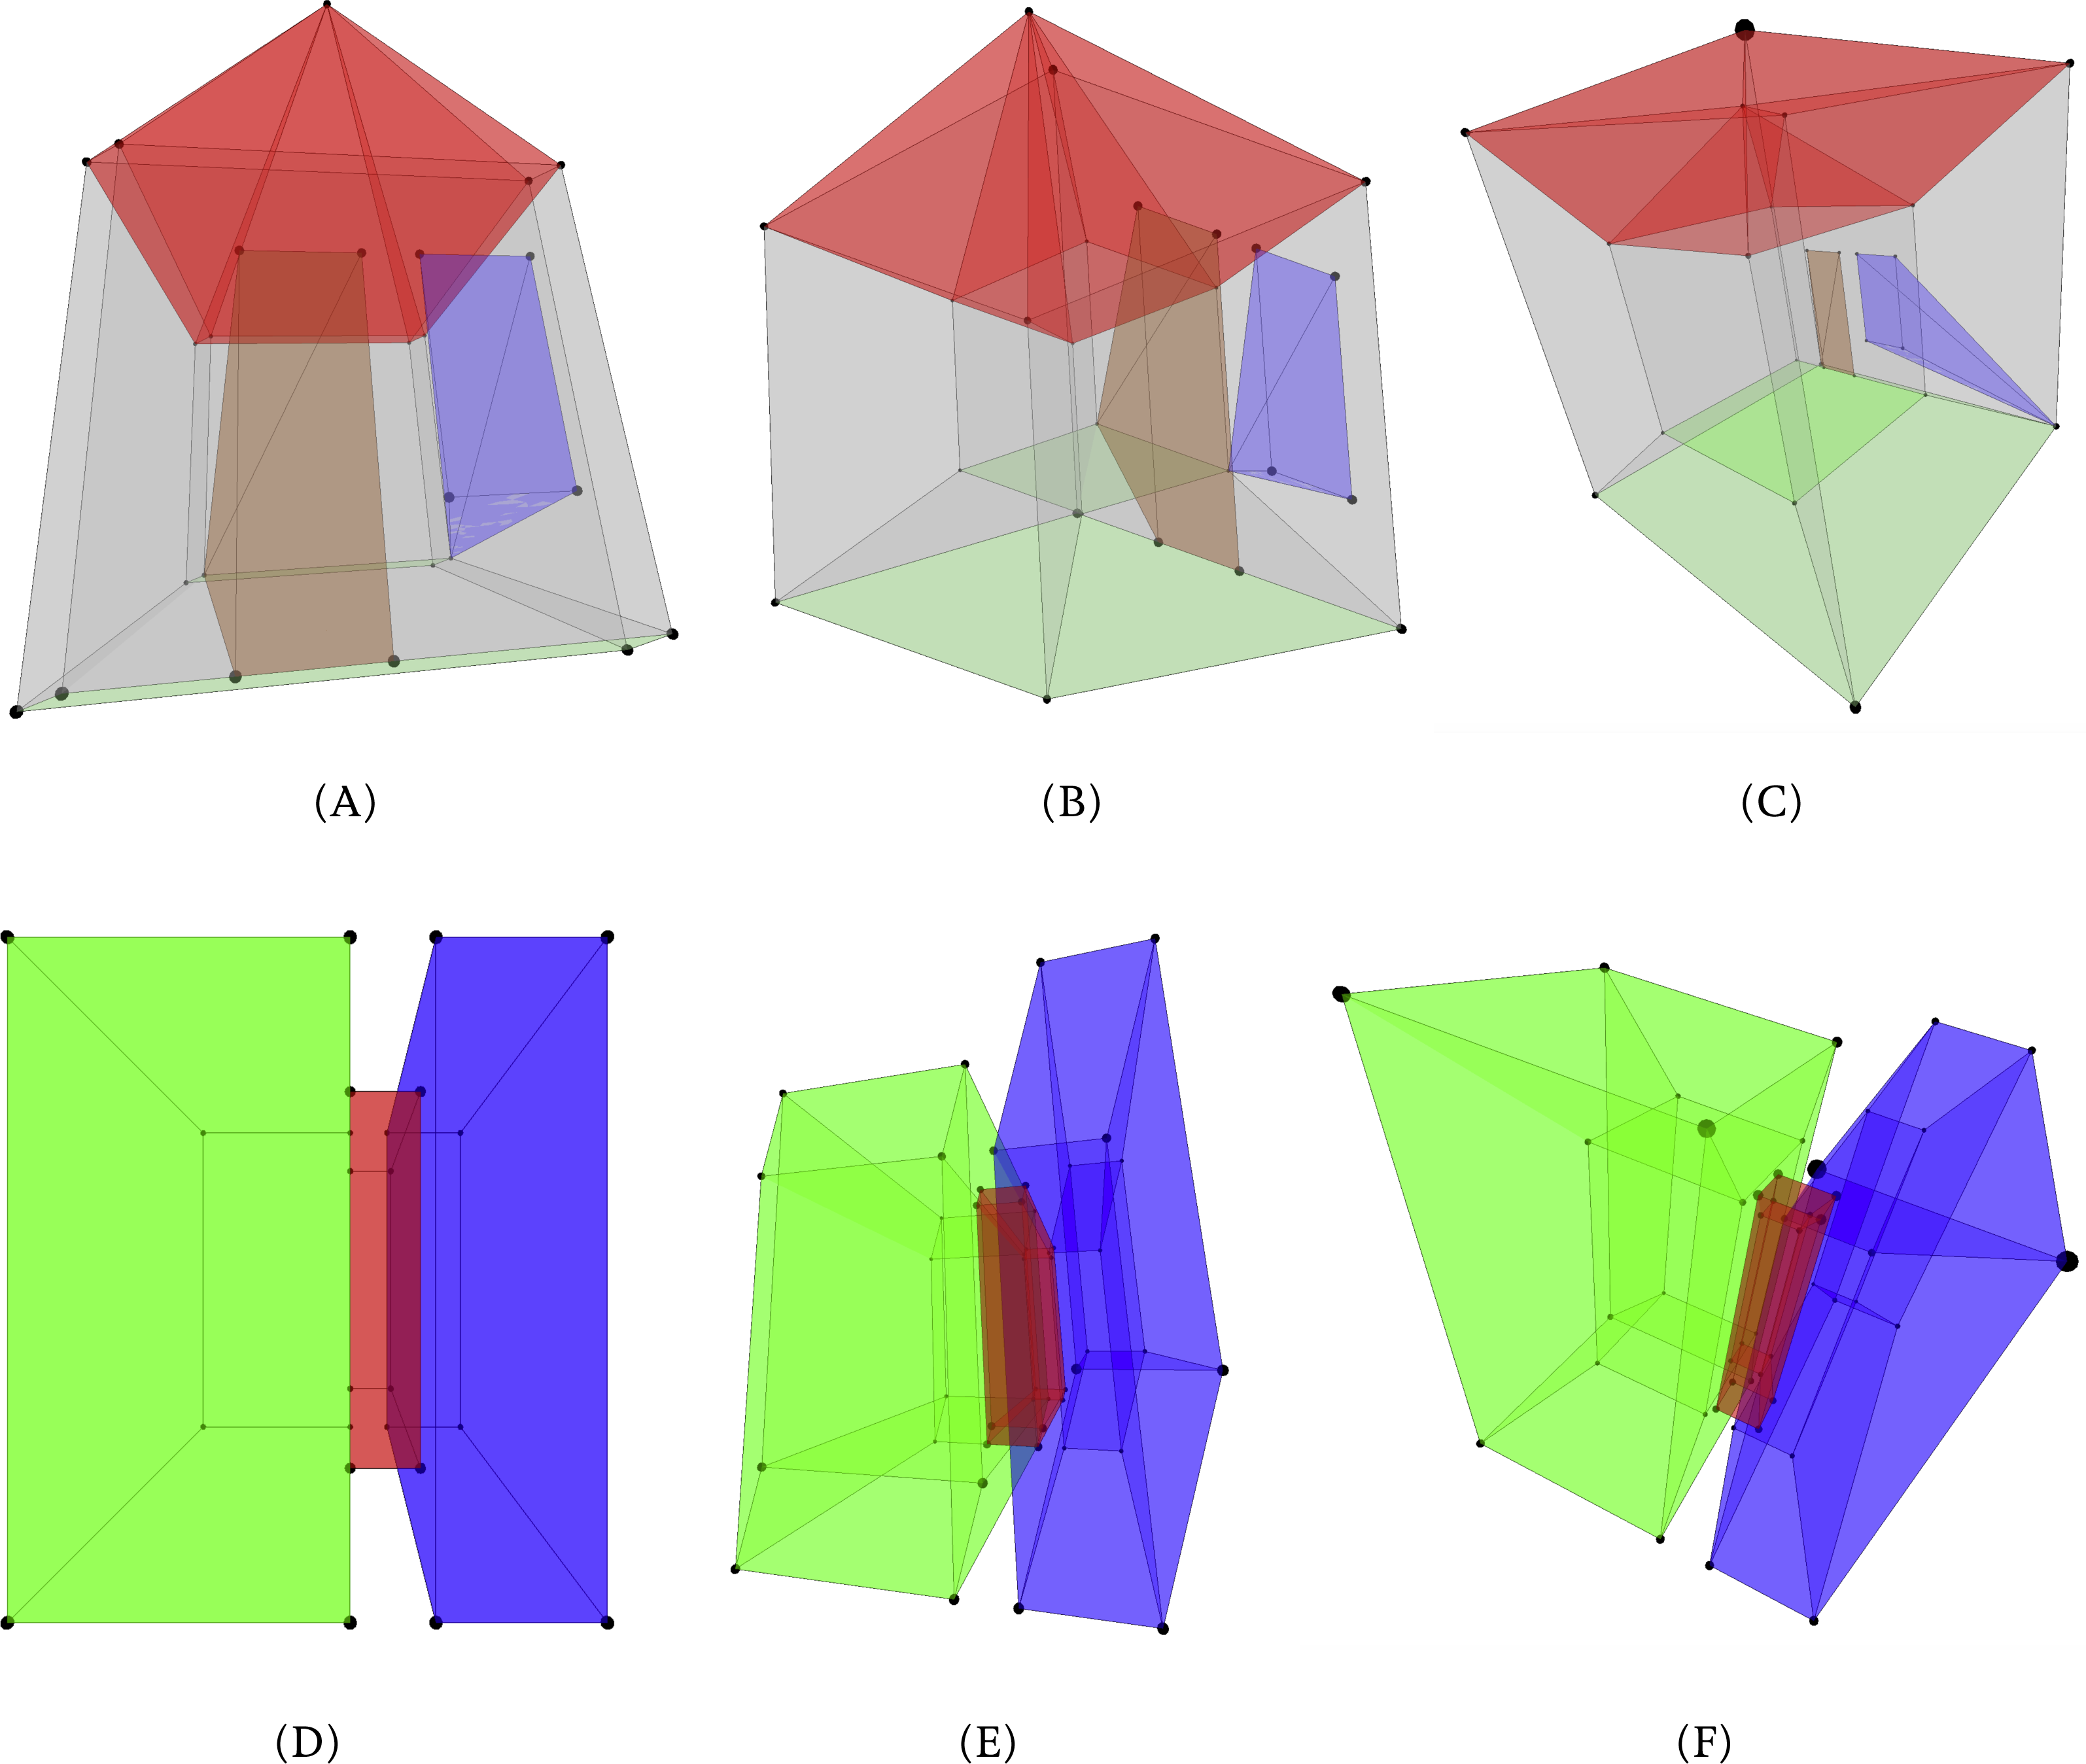 Visualising higher-dimensional space-time and space-scale objects as